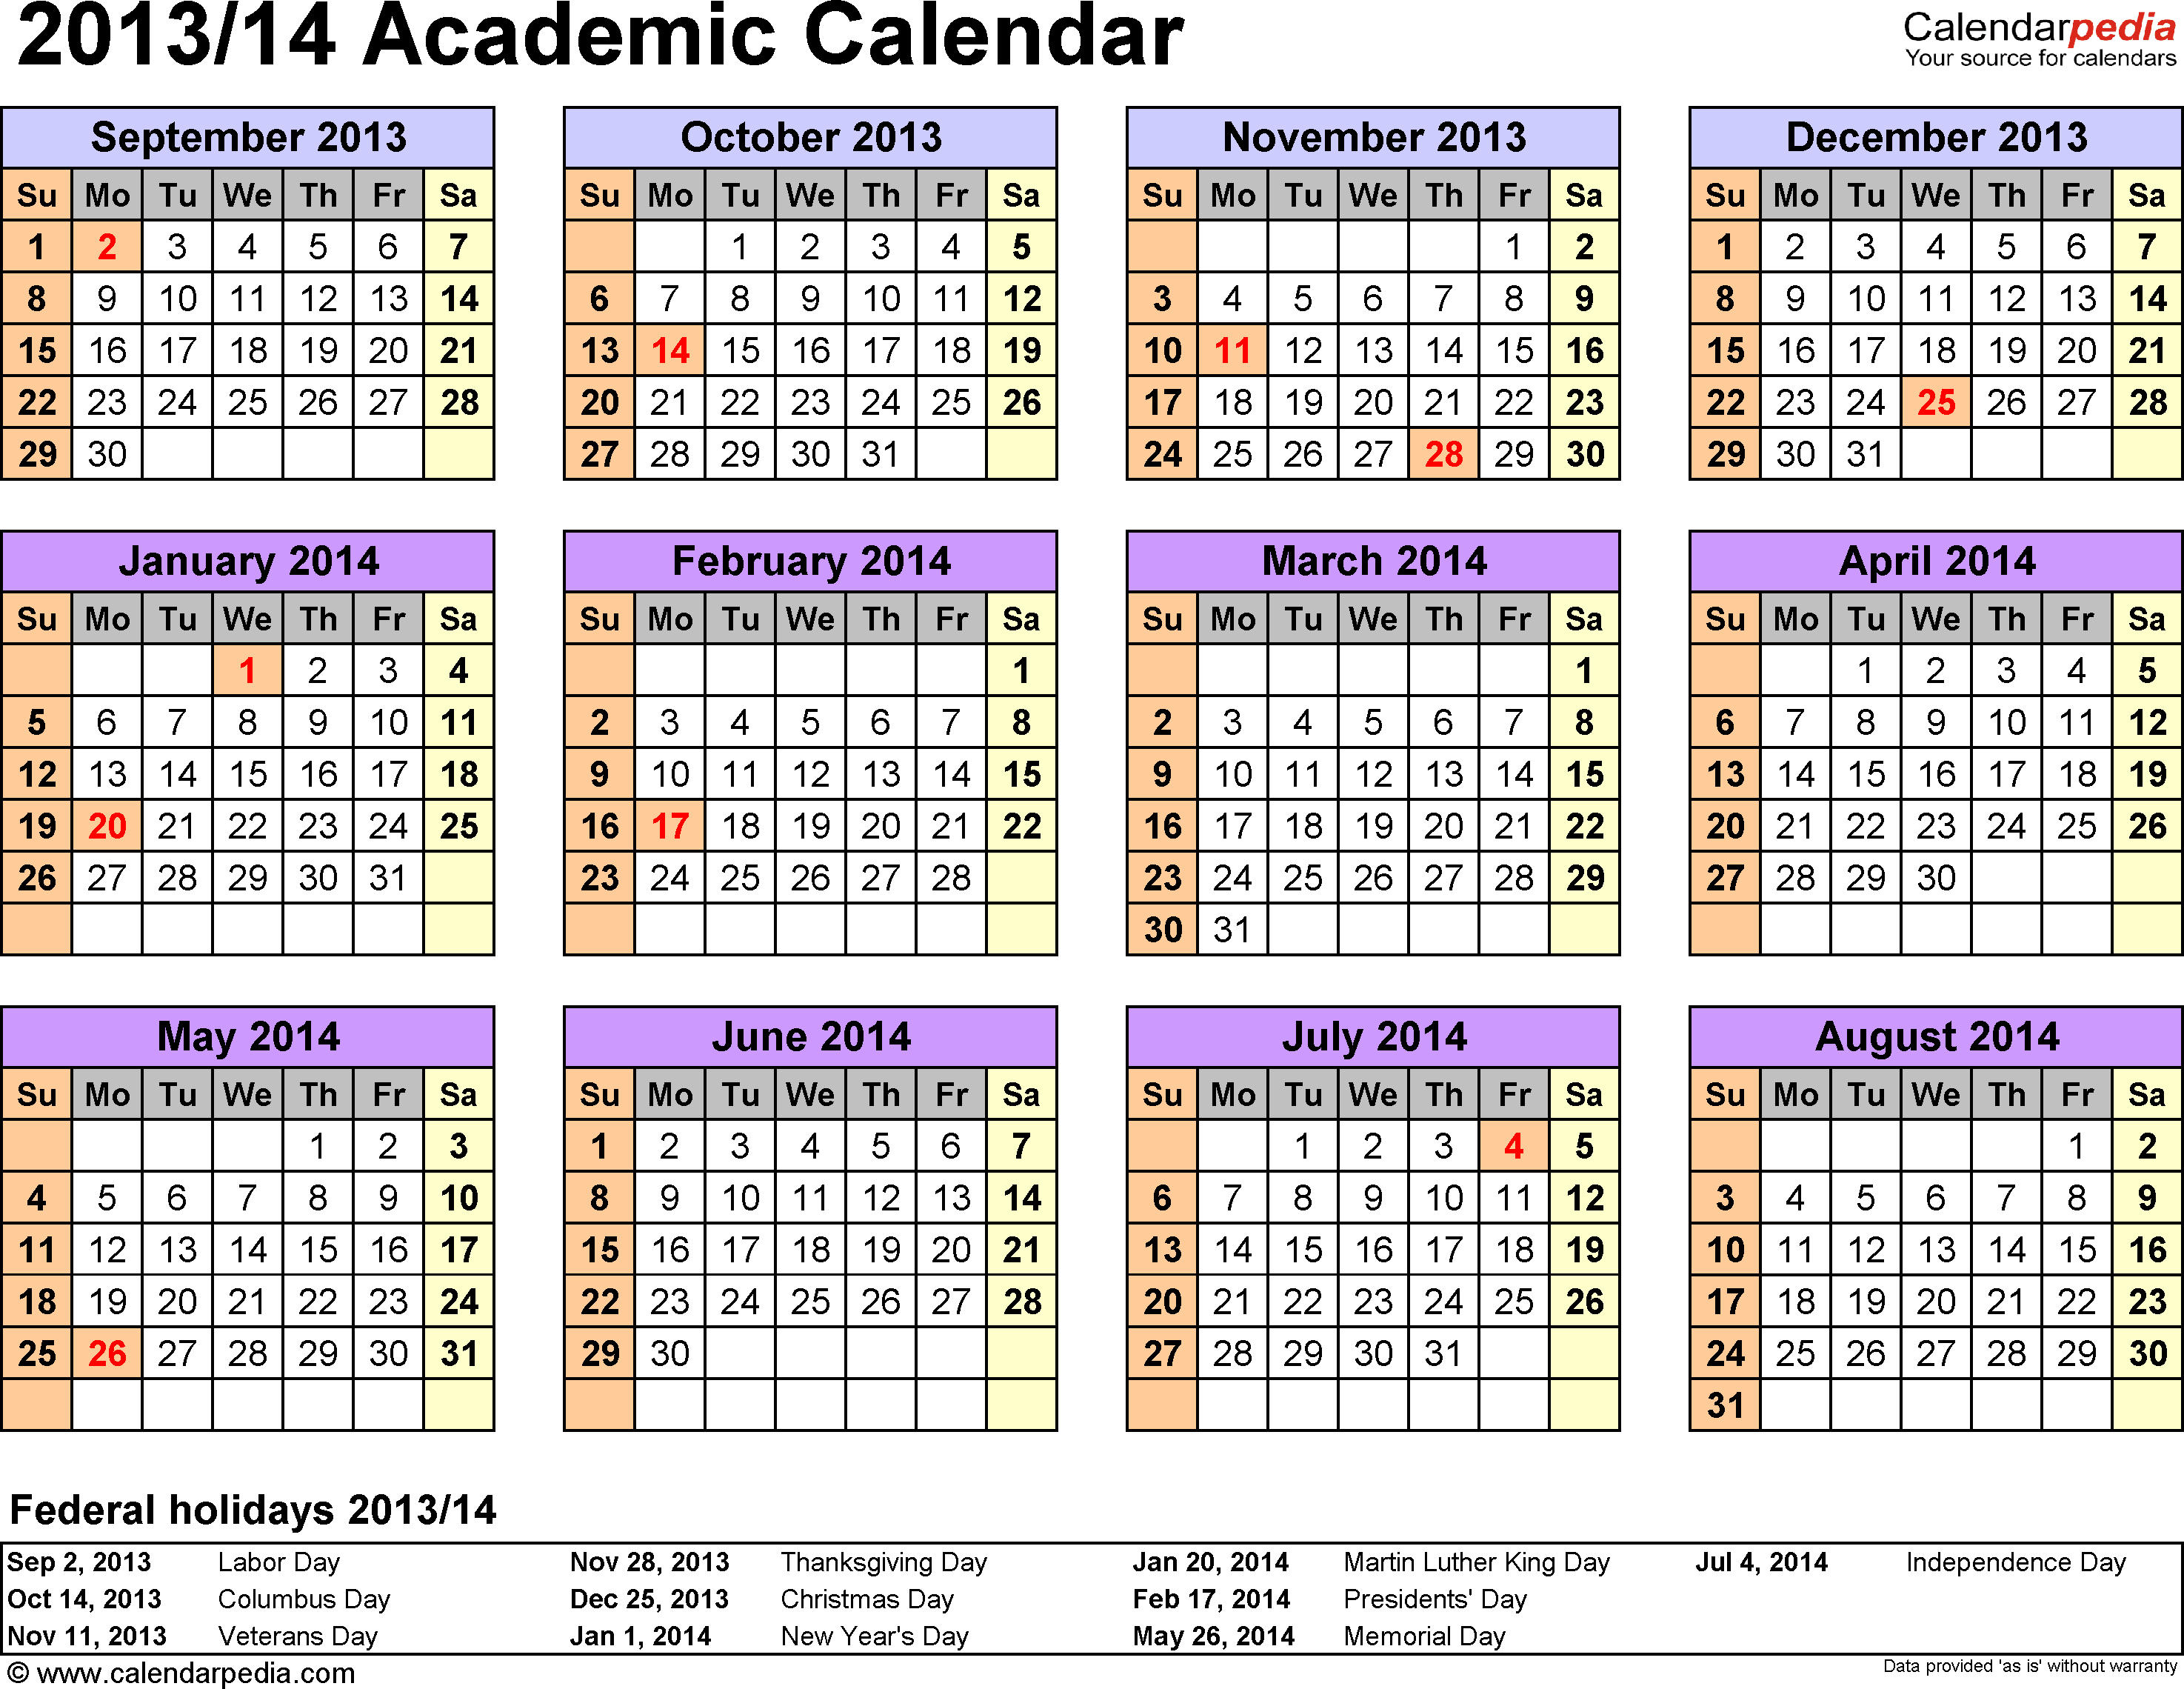 Template 3: Academic calendar 2013/14 for PDF, landscape orientation, year at a glance, 1 page